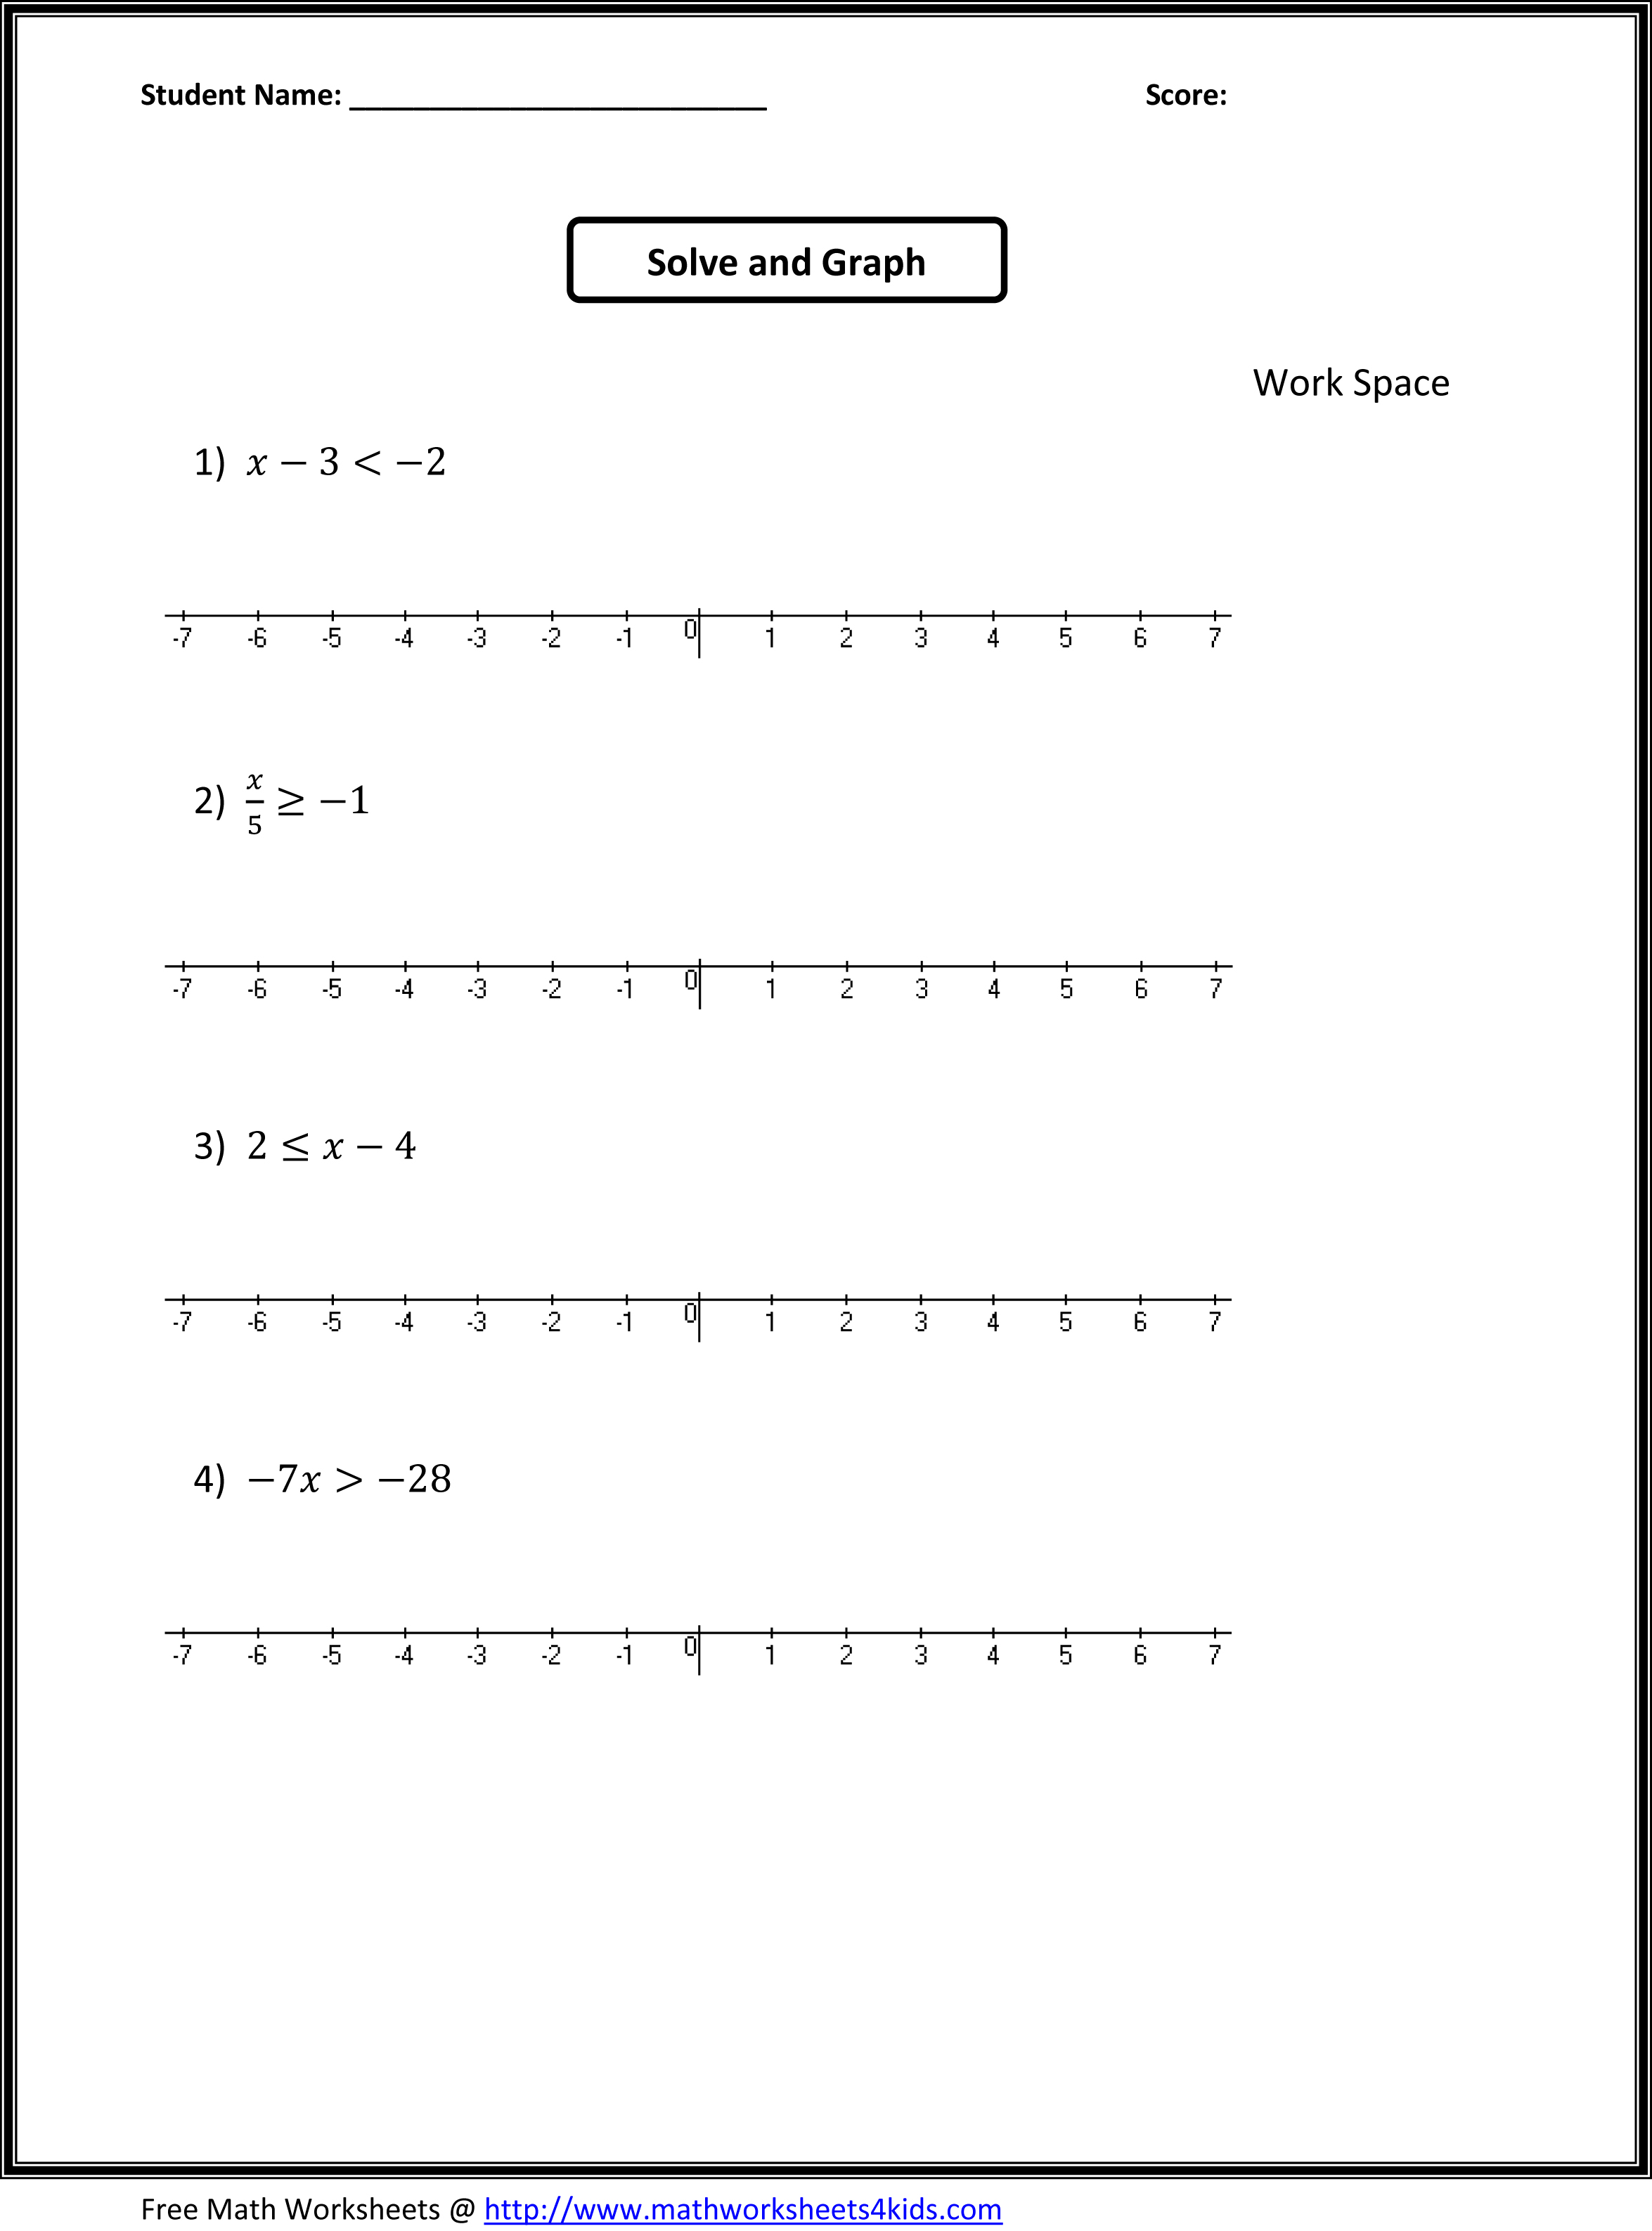 7 Best Images of 7th Grade Math Worksheets Printable - 7th Grade ...